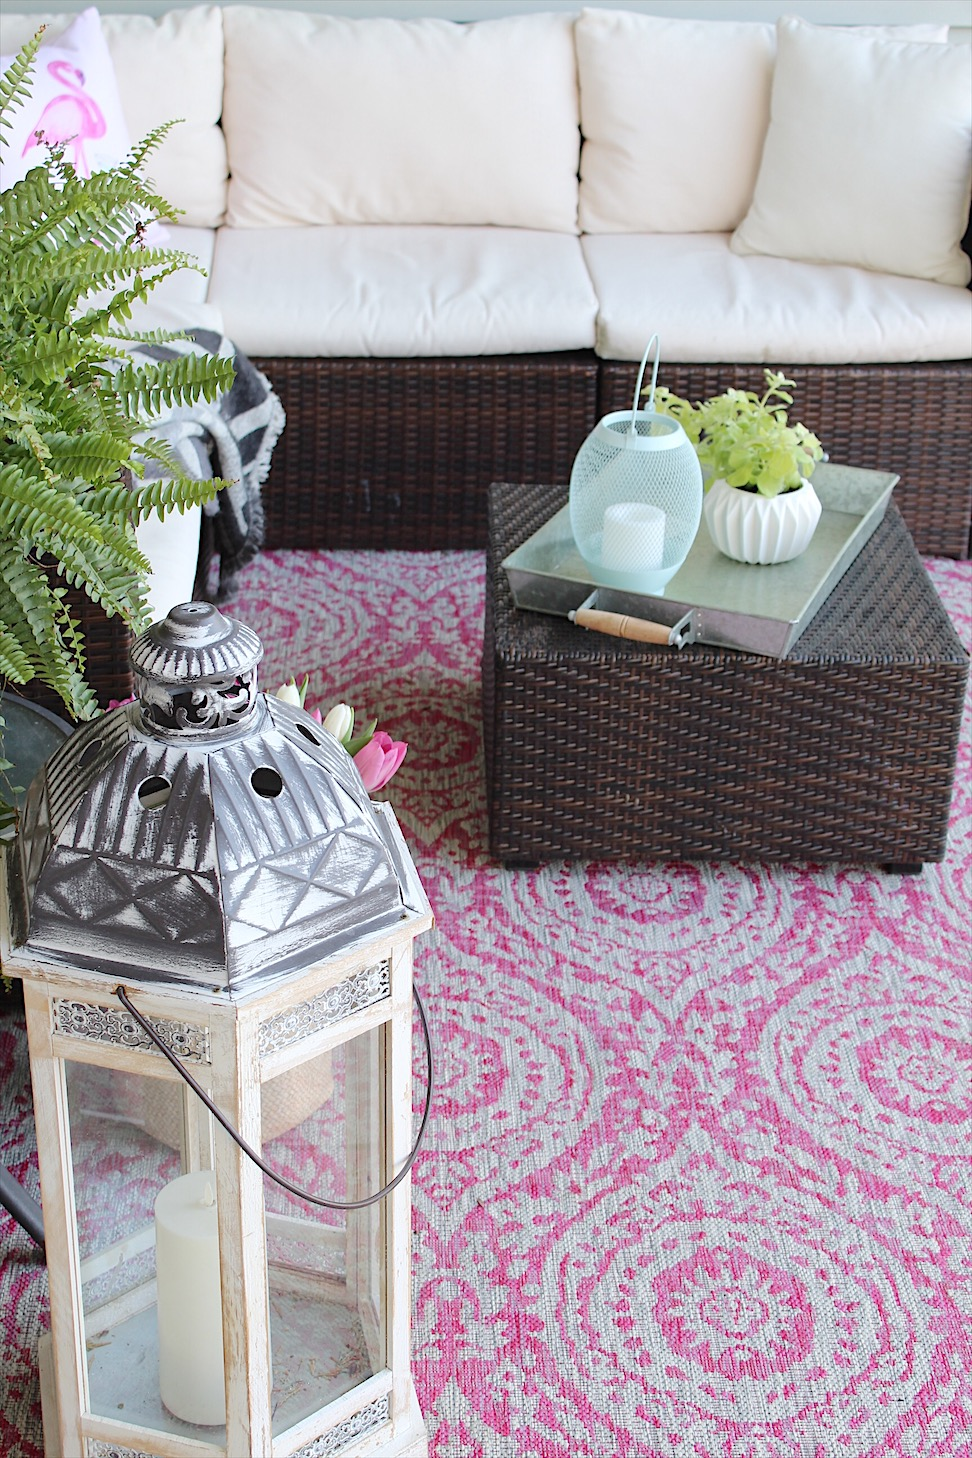 Front Porch Tour debuting new rug